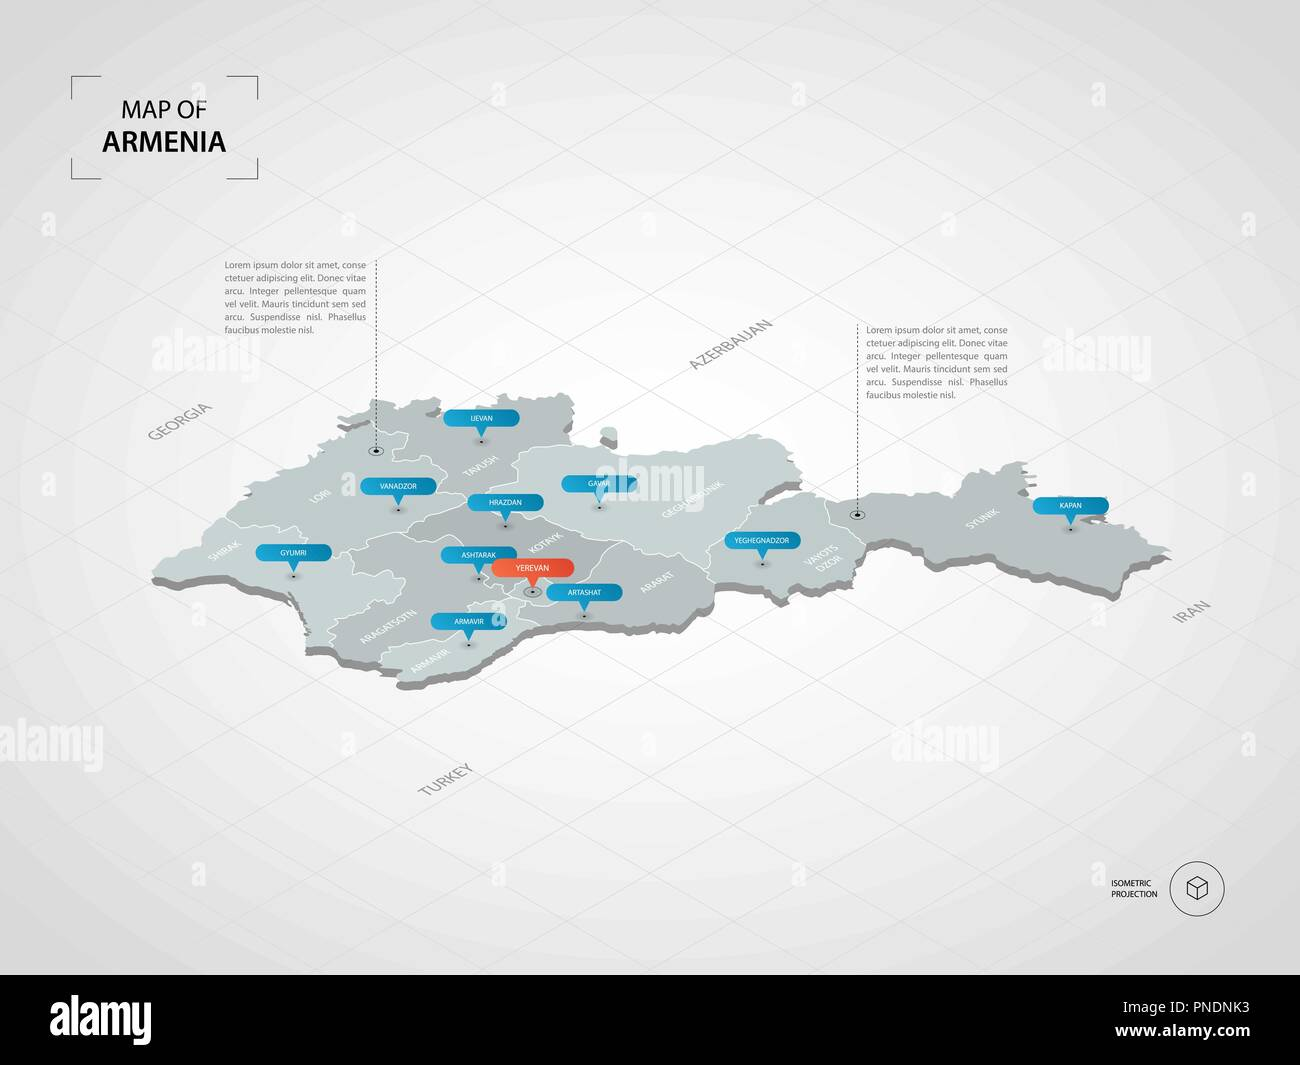 Isometric 3D Armenia map. Stylized vector map illustration ... on map of southern europe cities, map of central america cities, map of france cities, map of uk cities, map of china cities, map of s korea cities, map of asia cities, map of chile cities, map of latin america cities, map of west germany cities, map of brazil cities, map of western ukraine cities, map of india cities, map of the dominican republic cities, map of dutch cities, map of new zealand cities, map of ussr cities, map of democratic republic of congo cities, map of ireland cities, map of portugal cities,